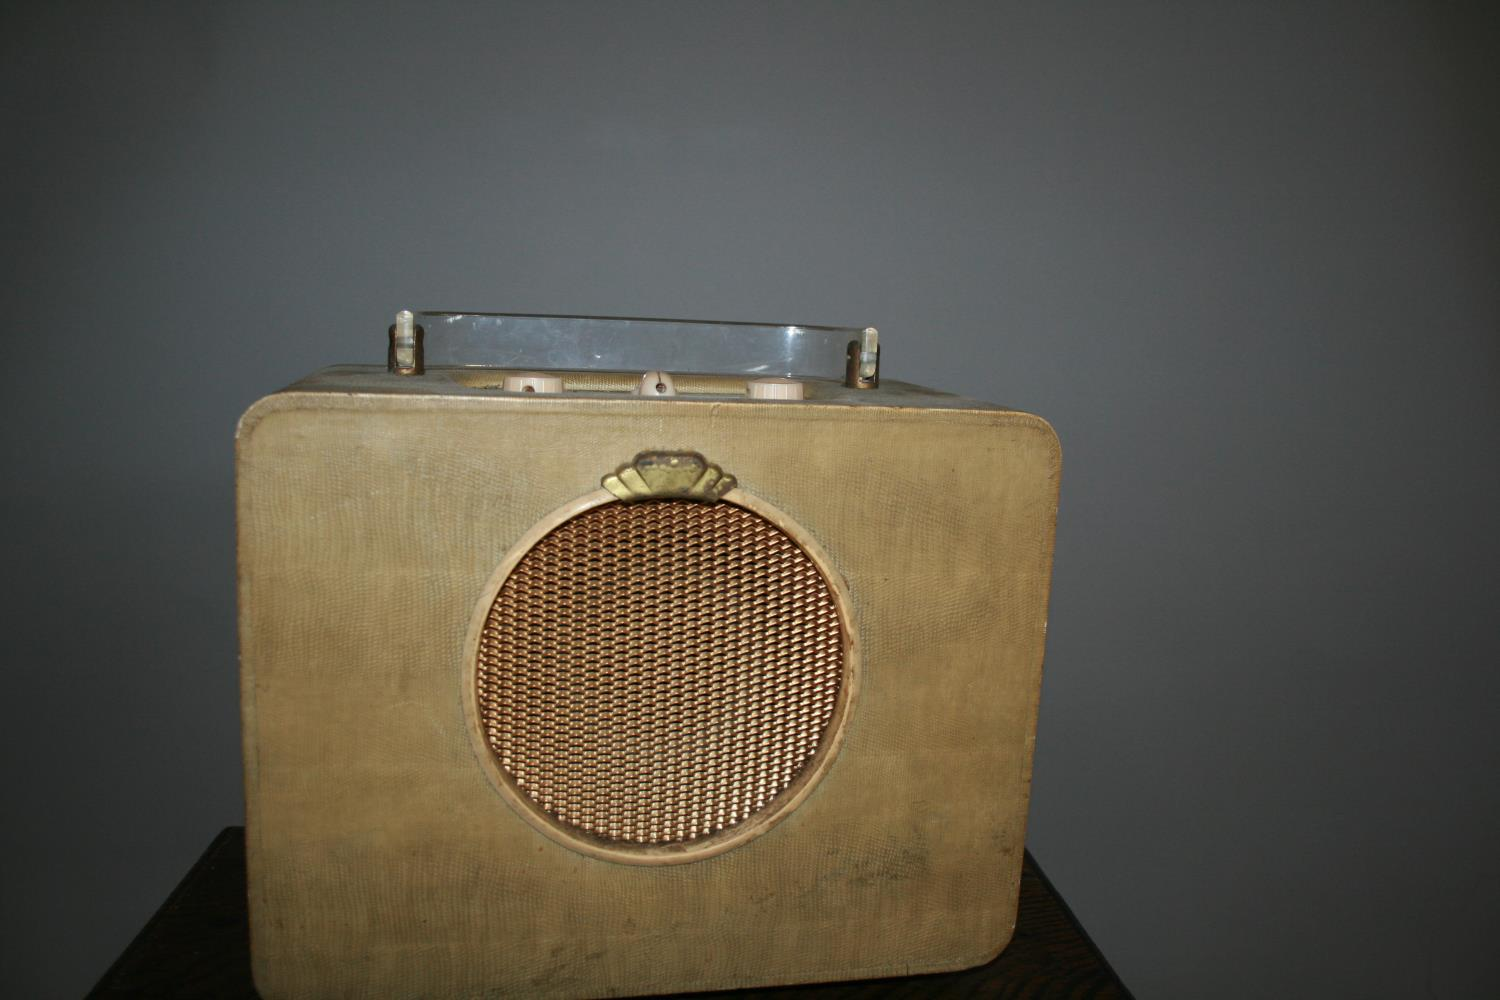 Cool vintage Ever Ready radio with perplex carrying handle. 30W x 30H x 18D - Image 2 of 2